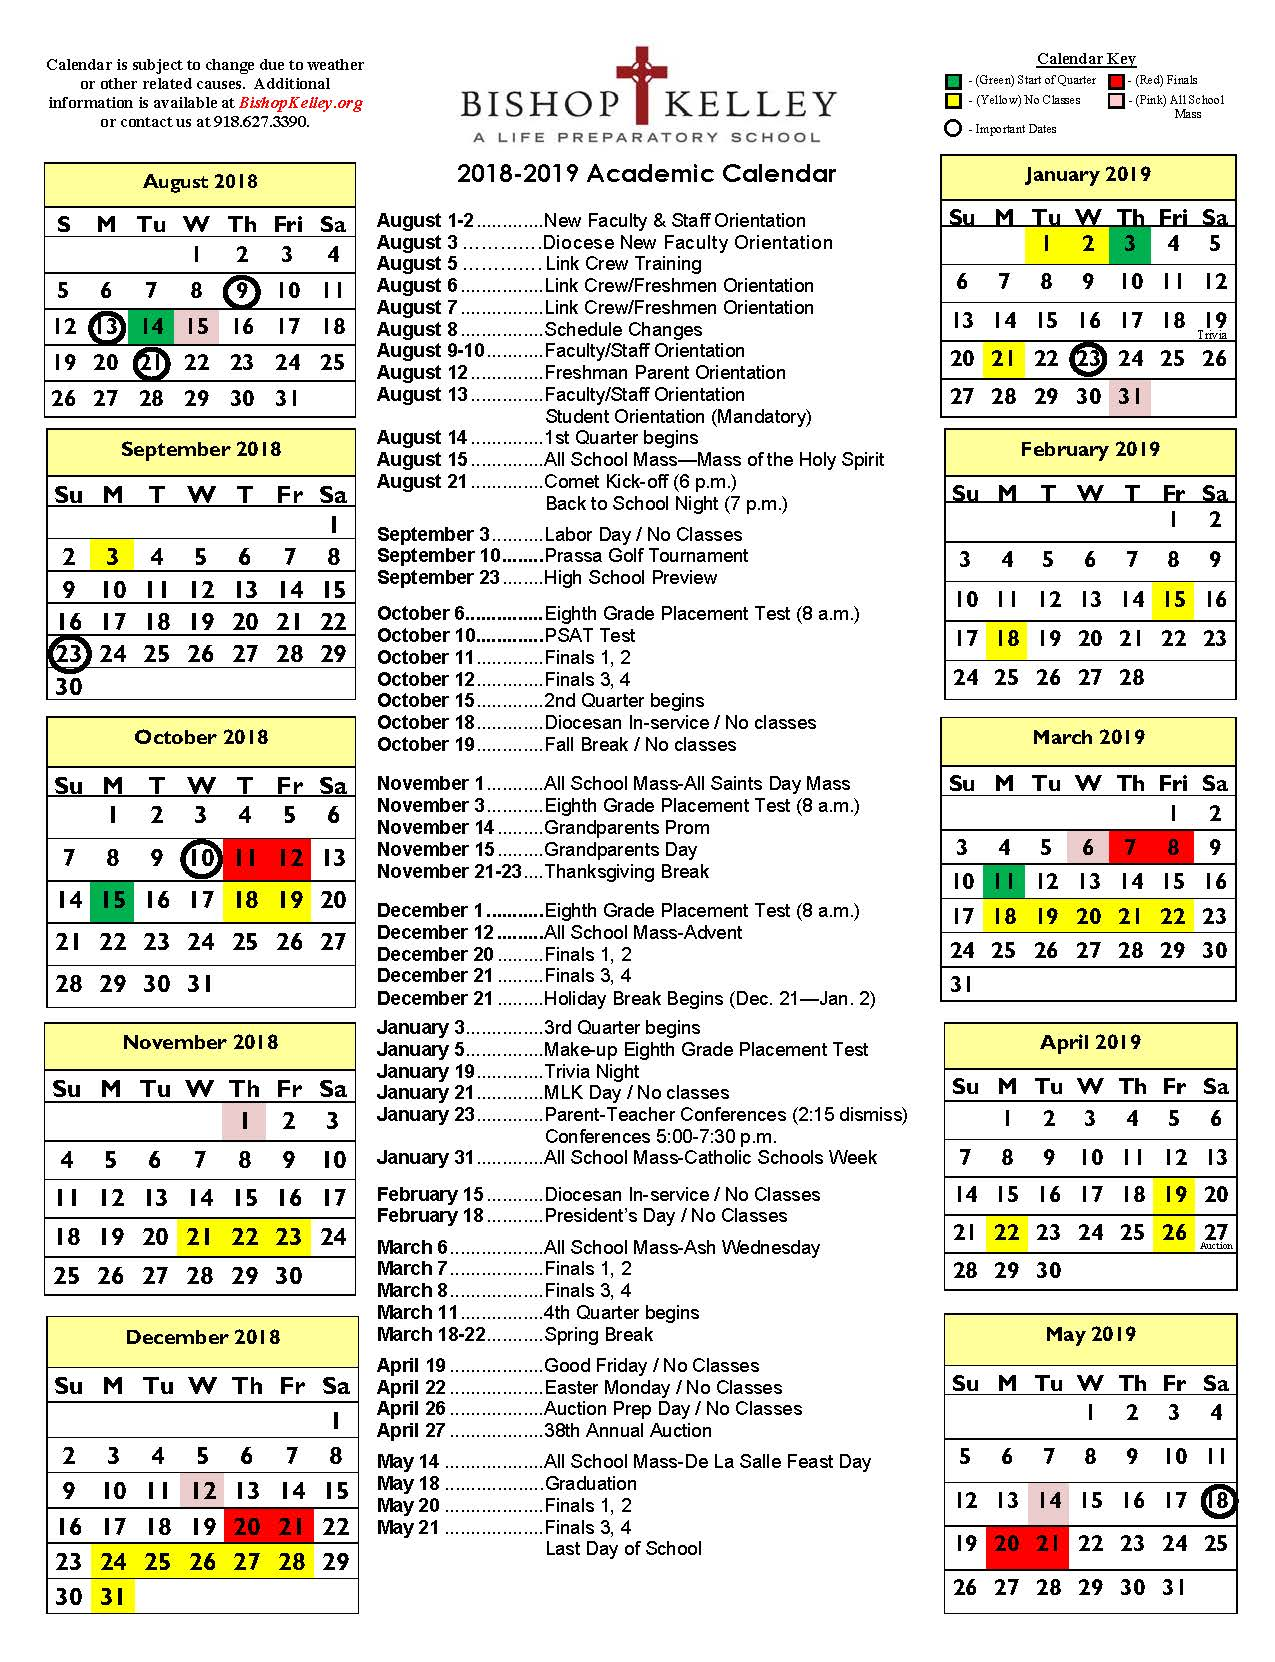 Military Fiscal Year 2019 Calendar With Academic Bishop Kelley